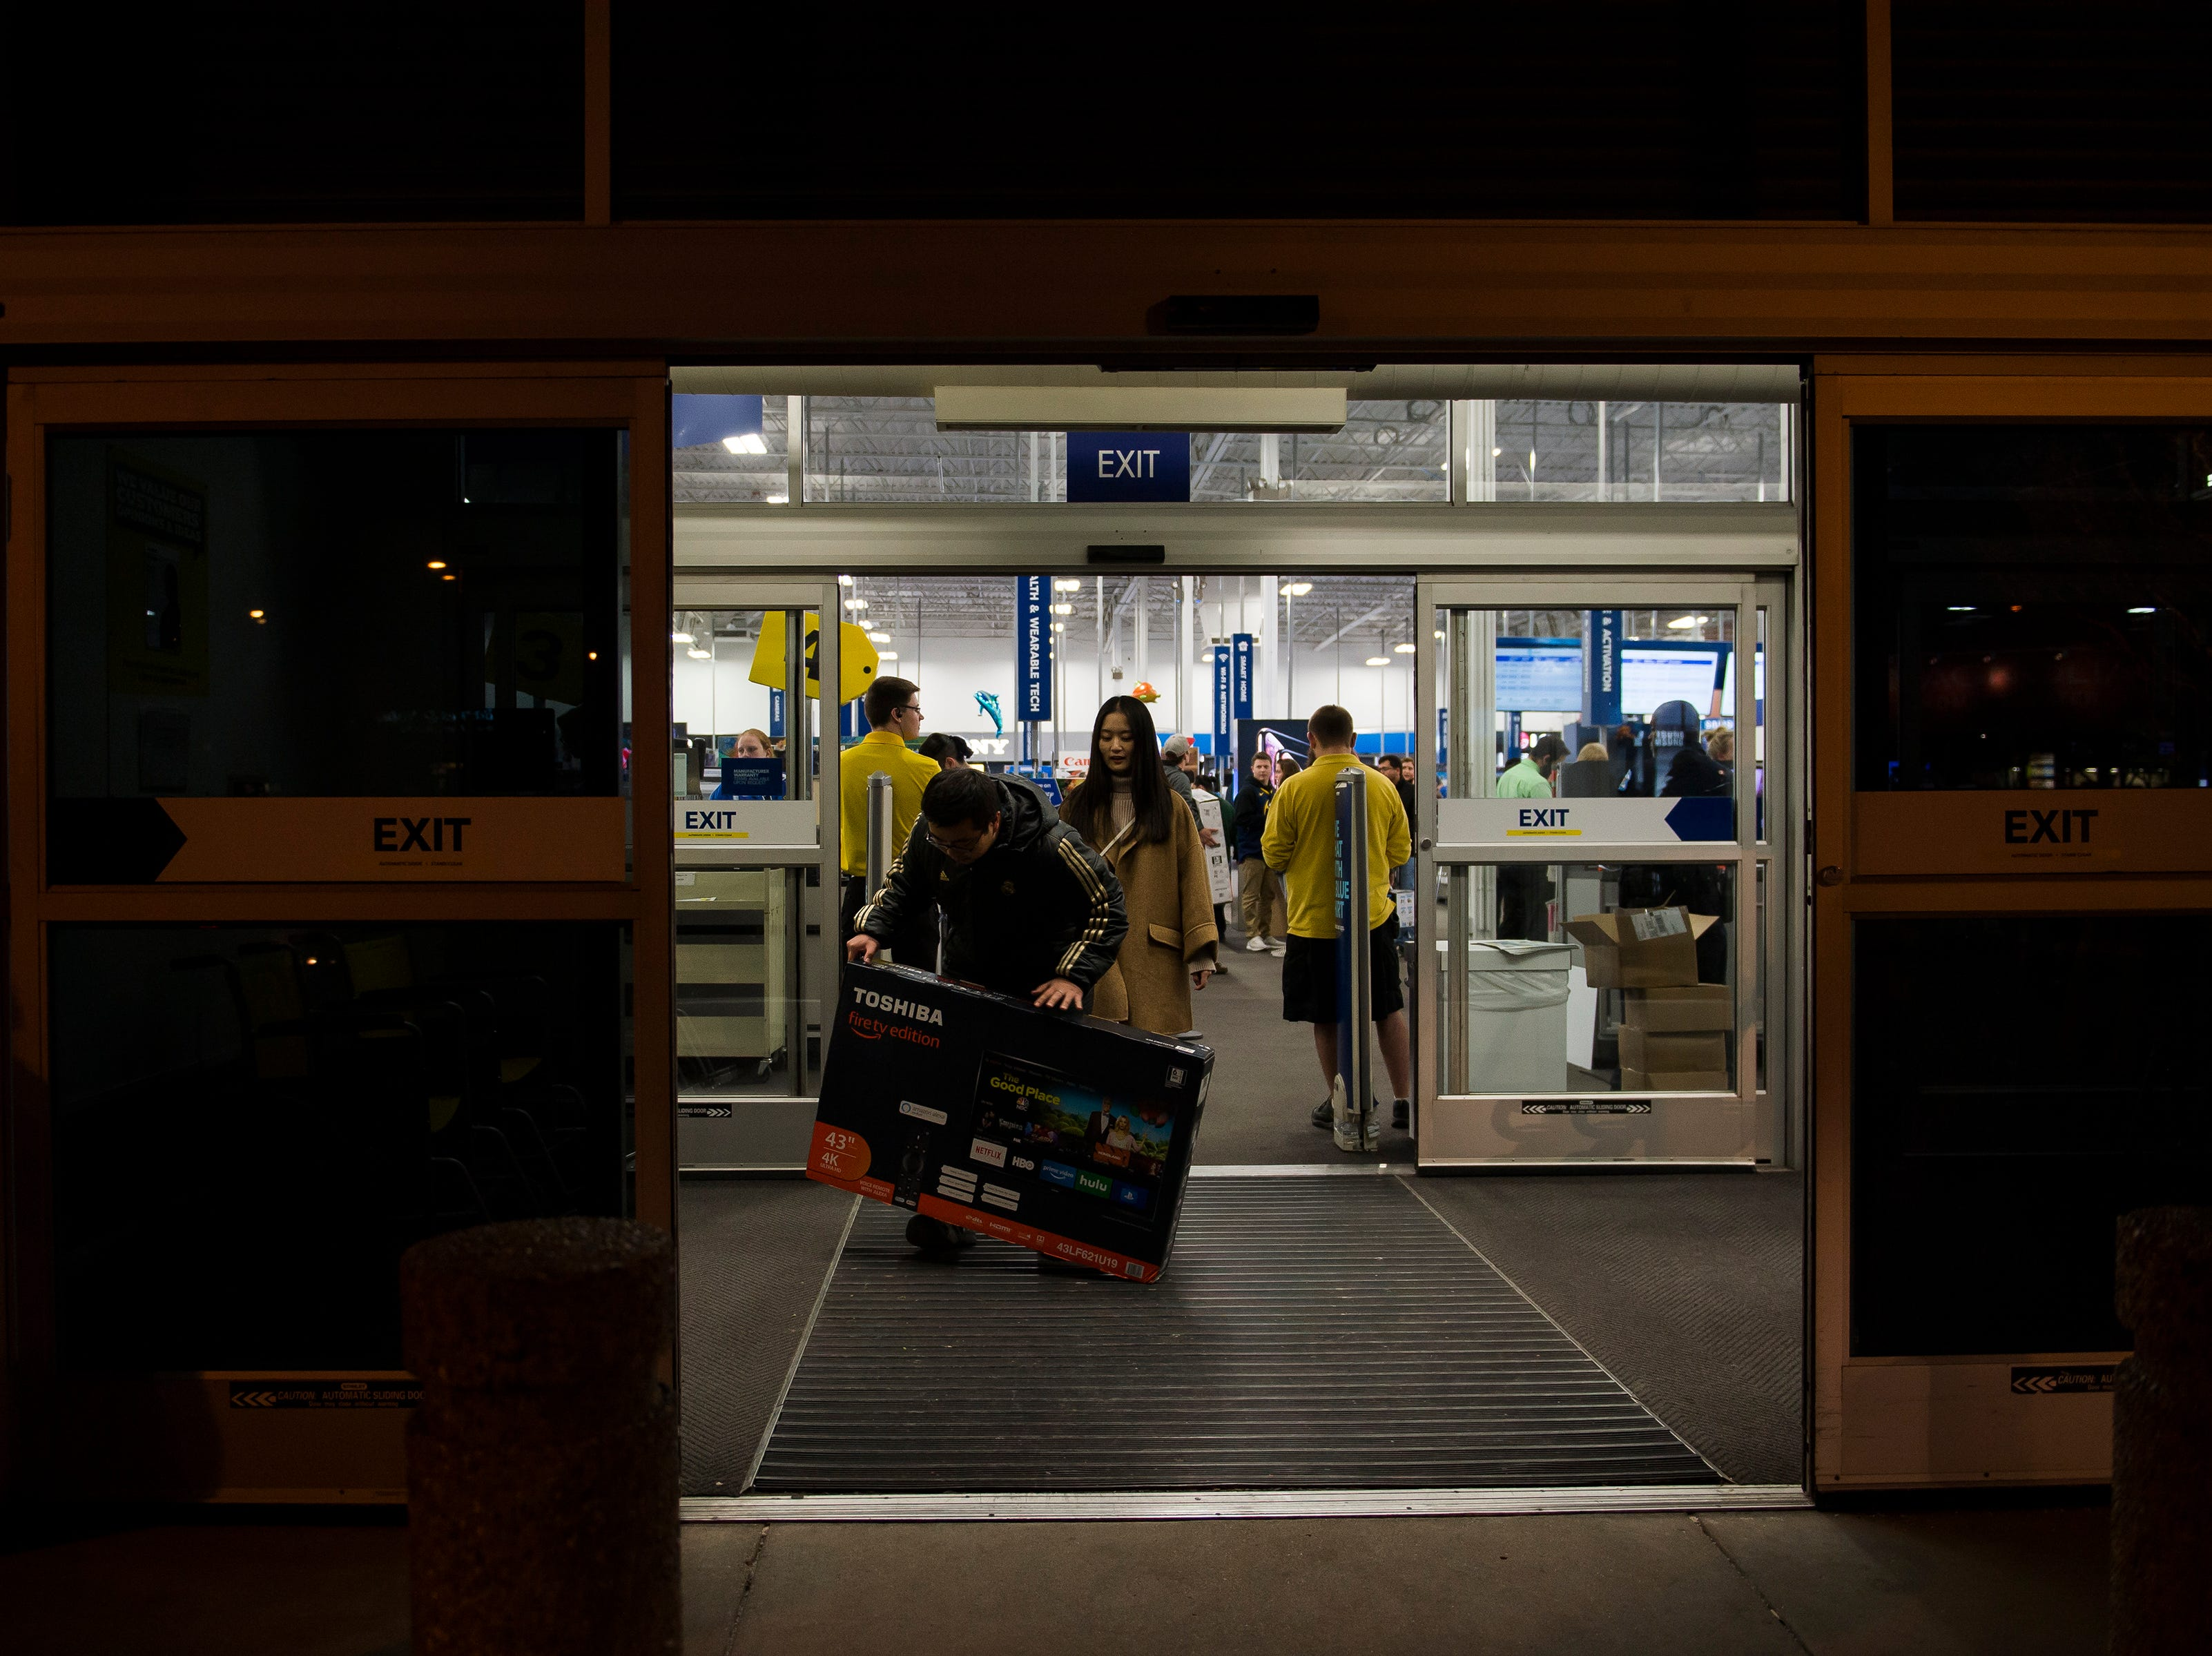 Customers make their way outside after purchasing a television on Thursday, Nov. 22, 2018, at Best Buy in Fort Collins, Colo.